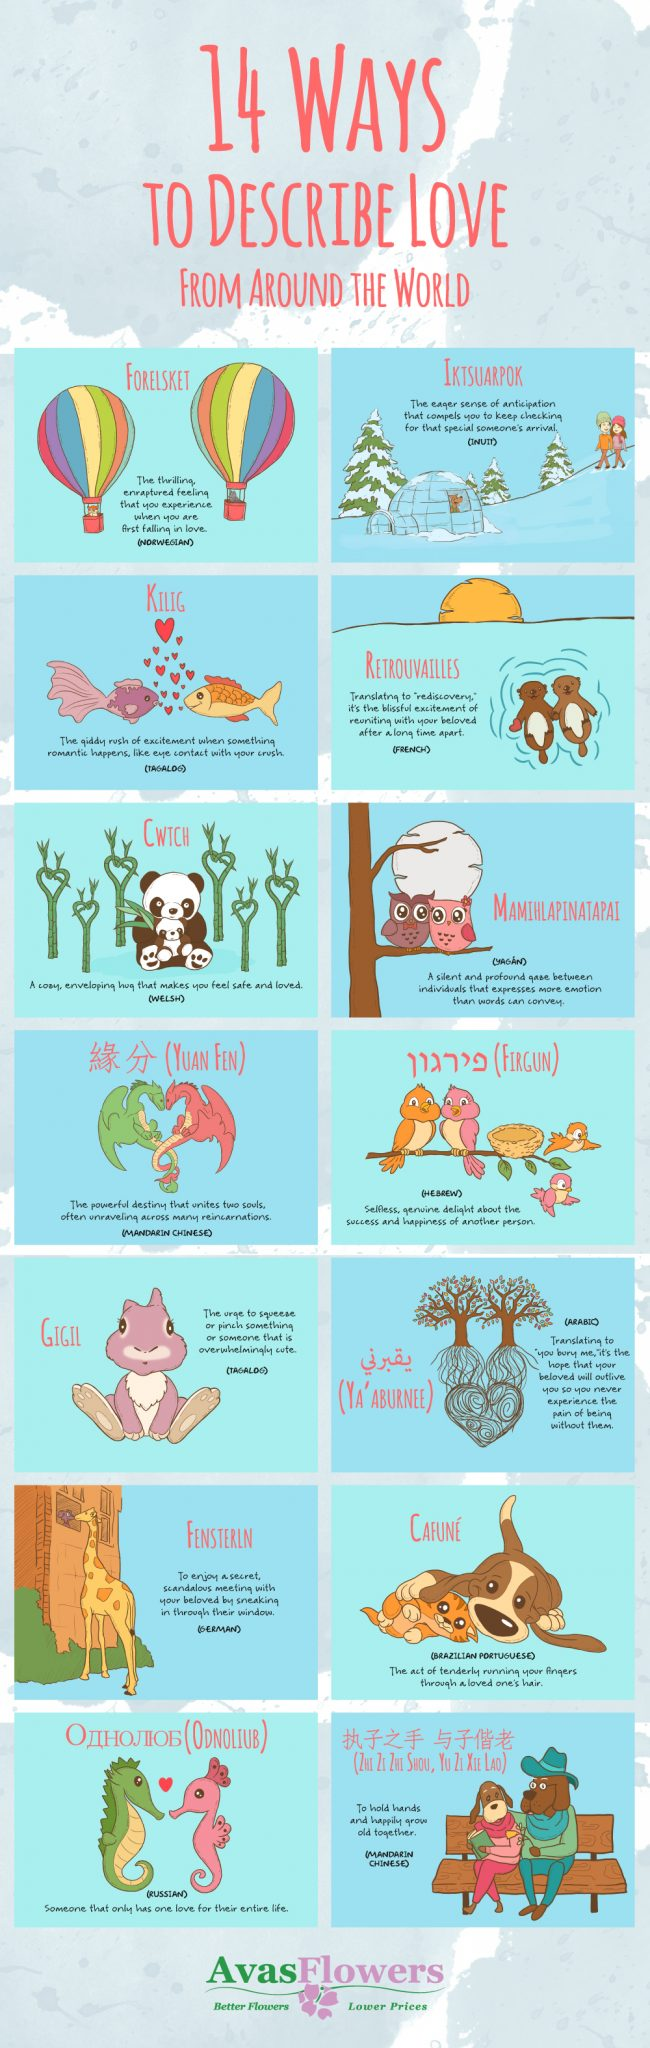 14 ways to describe love from around the world infographic - iGaming Translation Royale